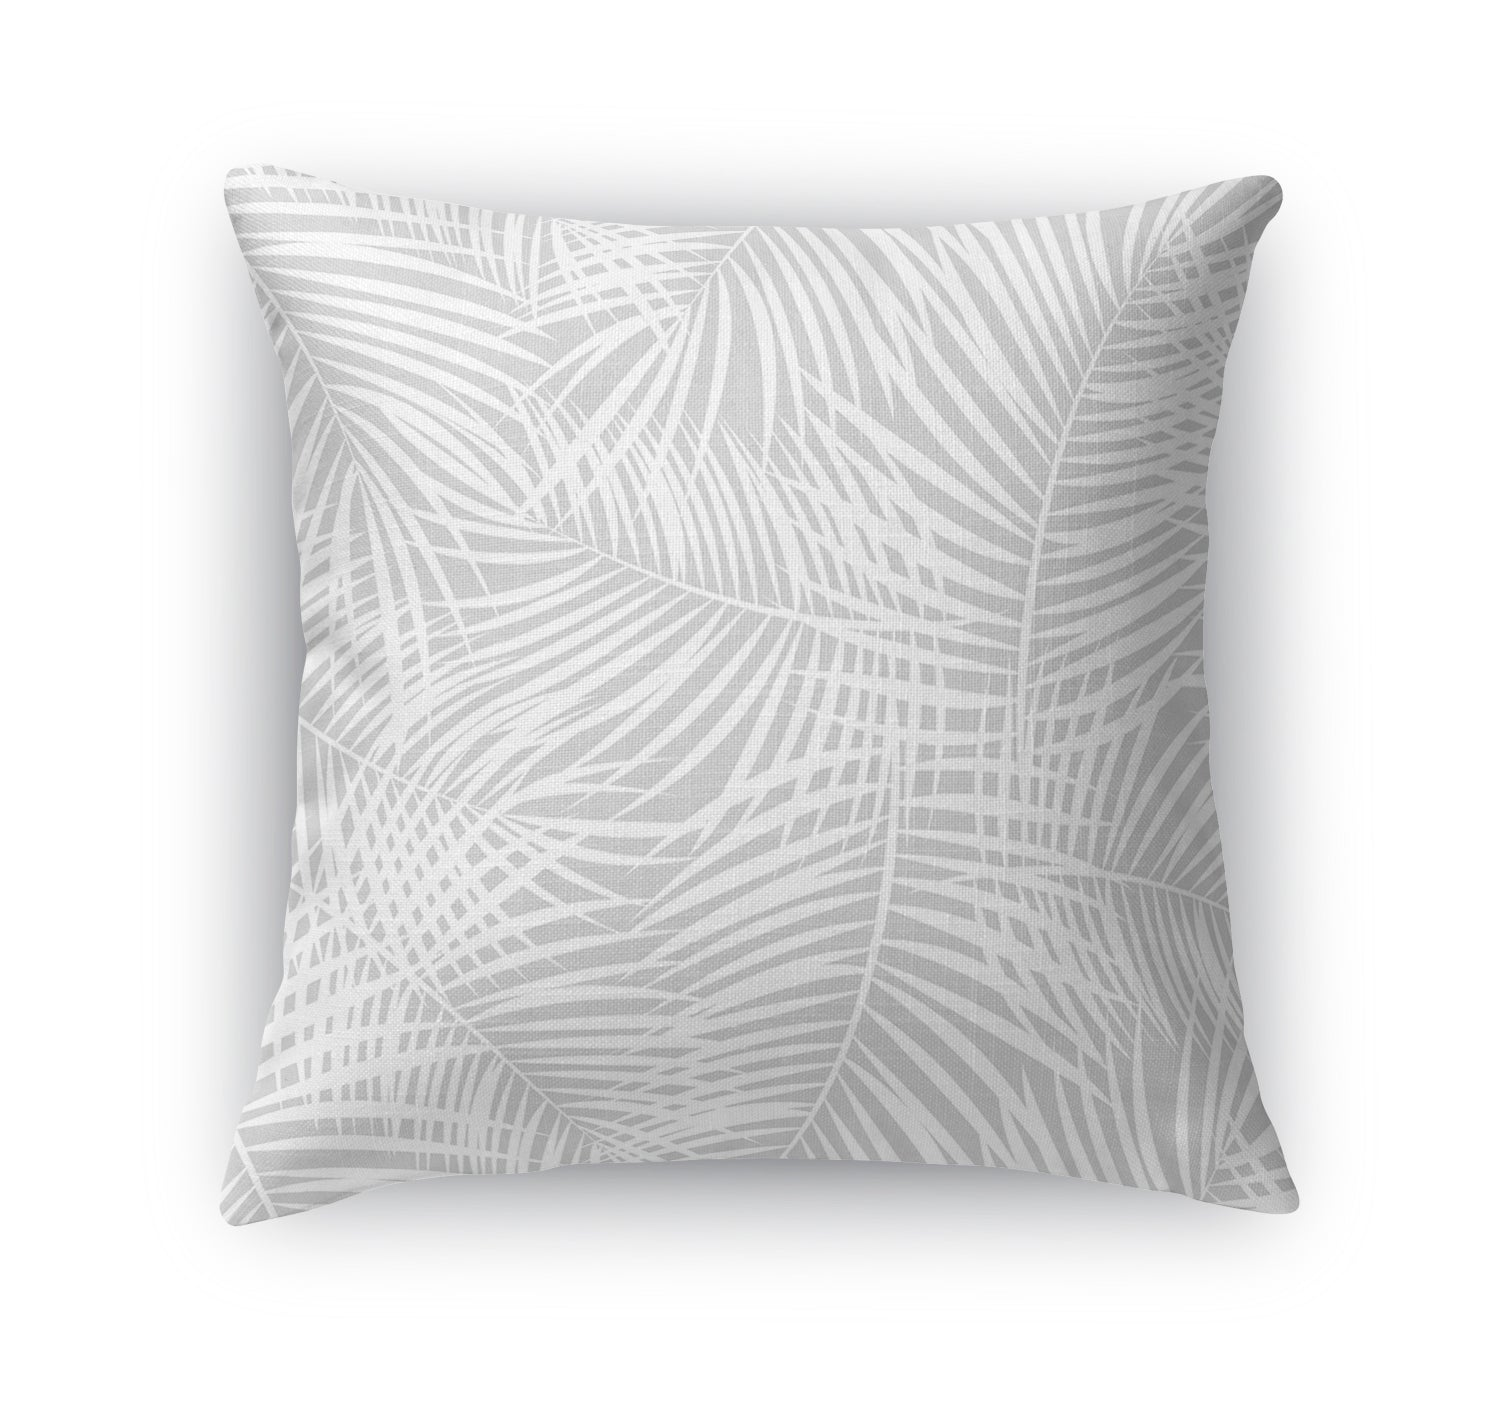 PALM PLAY GREY Indoor|Outdoor Pillow By Terri Ellis